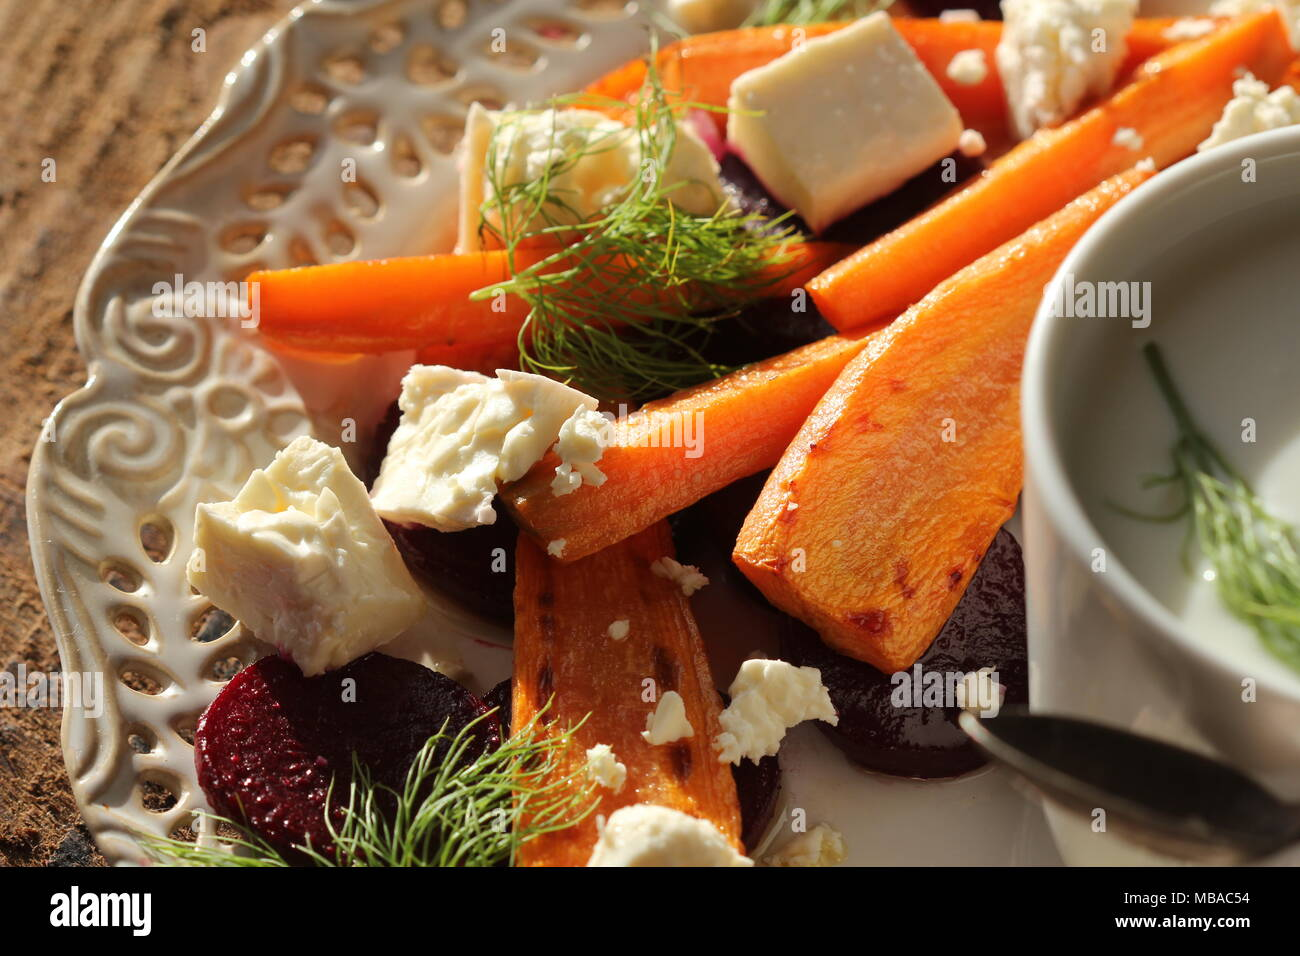 Healthy grilled beet, carrots salad with cheese feta, fennel and Greek yogurt in small glass bowls on the rustic wooden table, top view - Stock Image